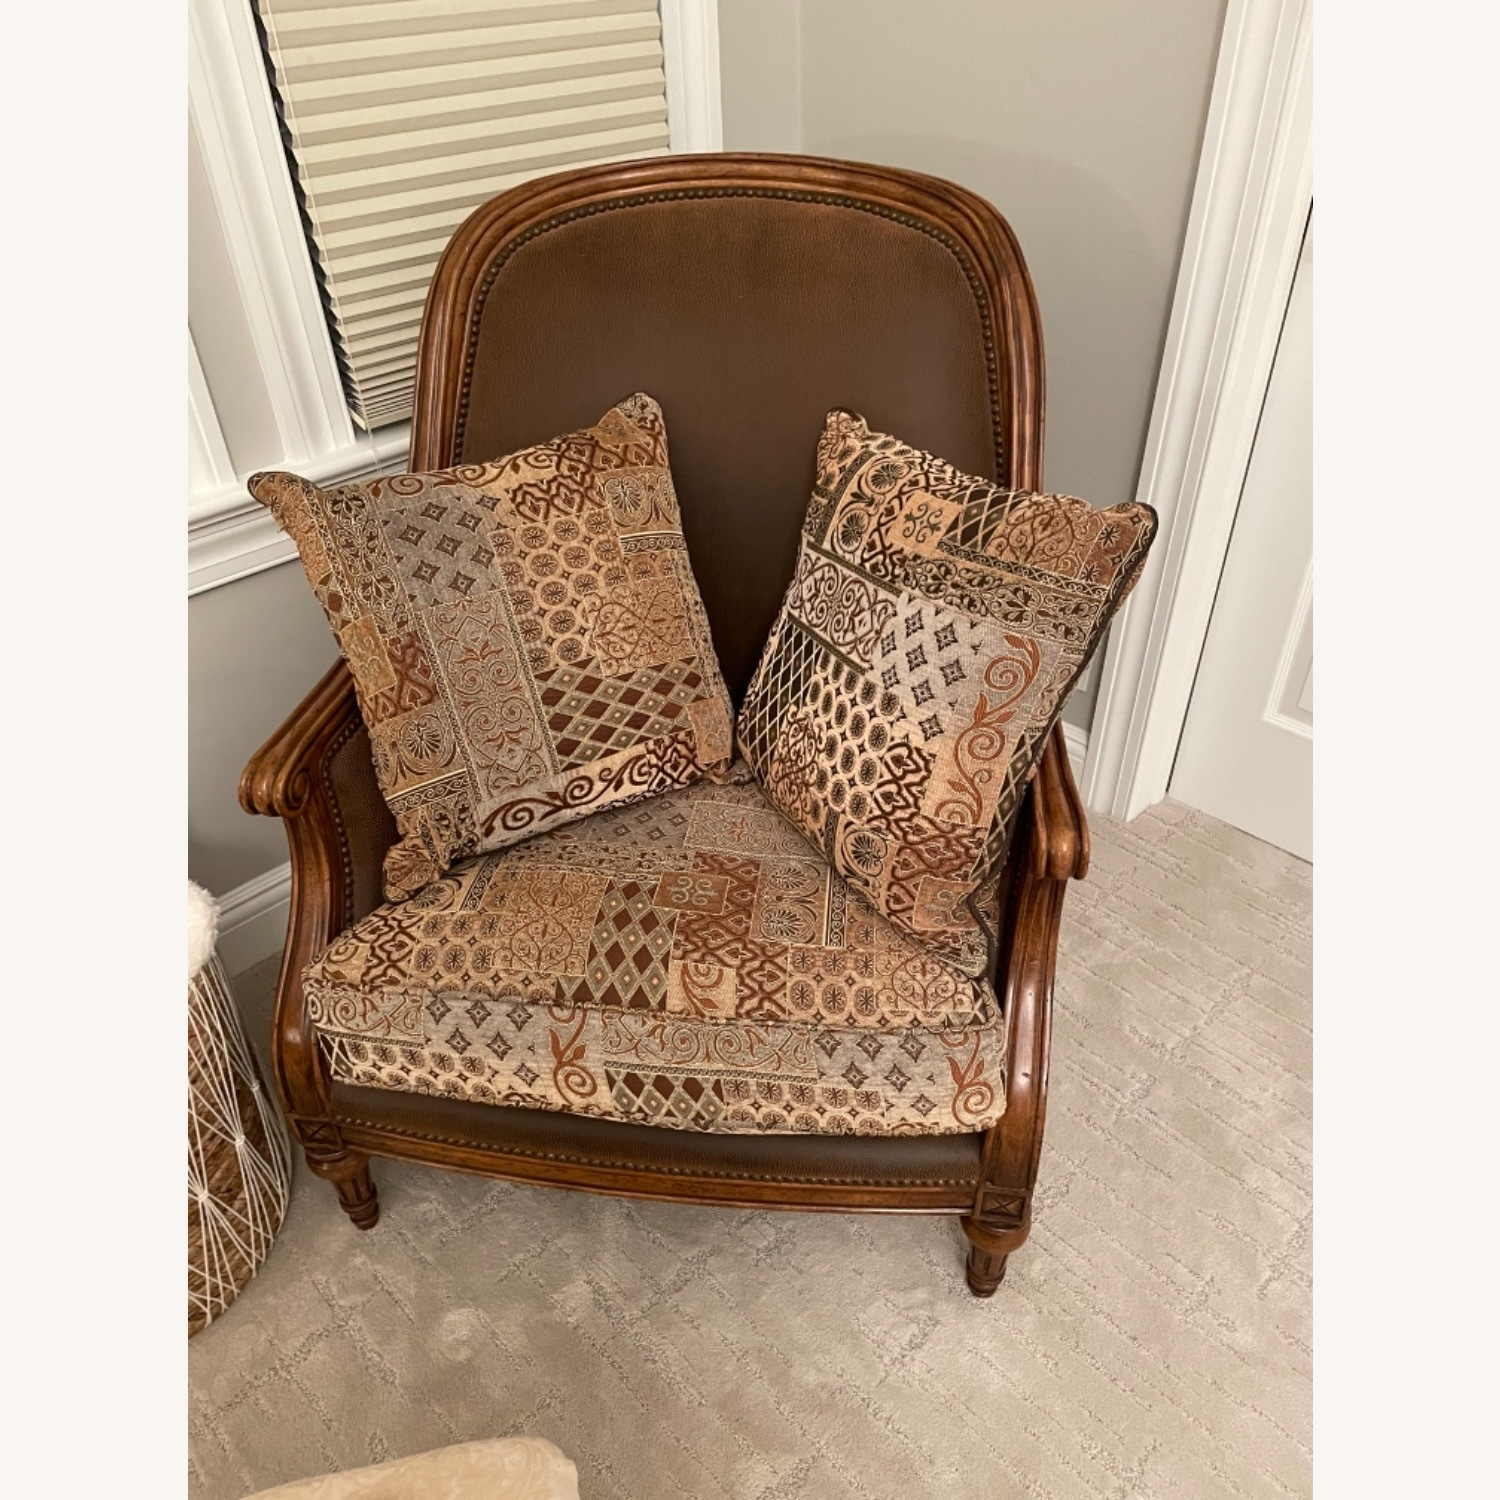 Peter Andrews Accent Chair - image-1